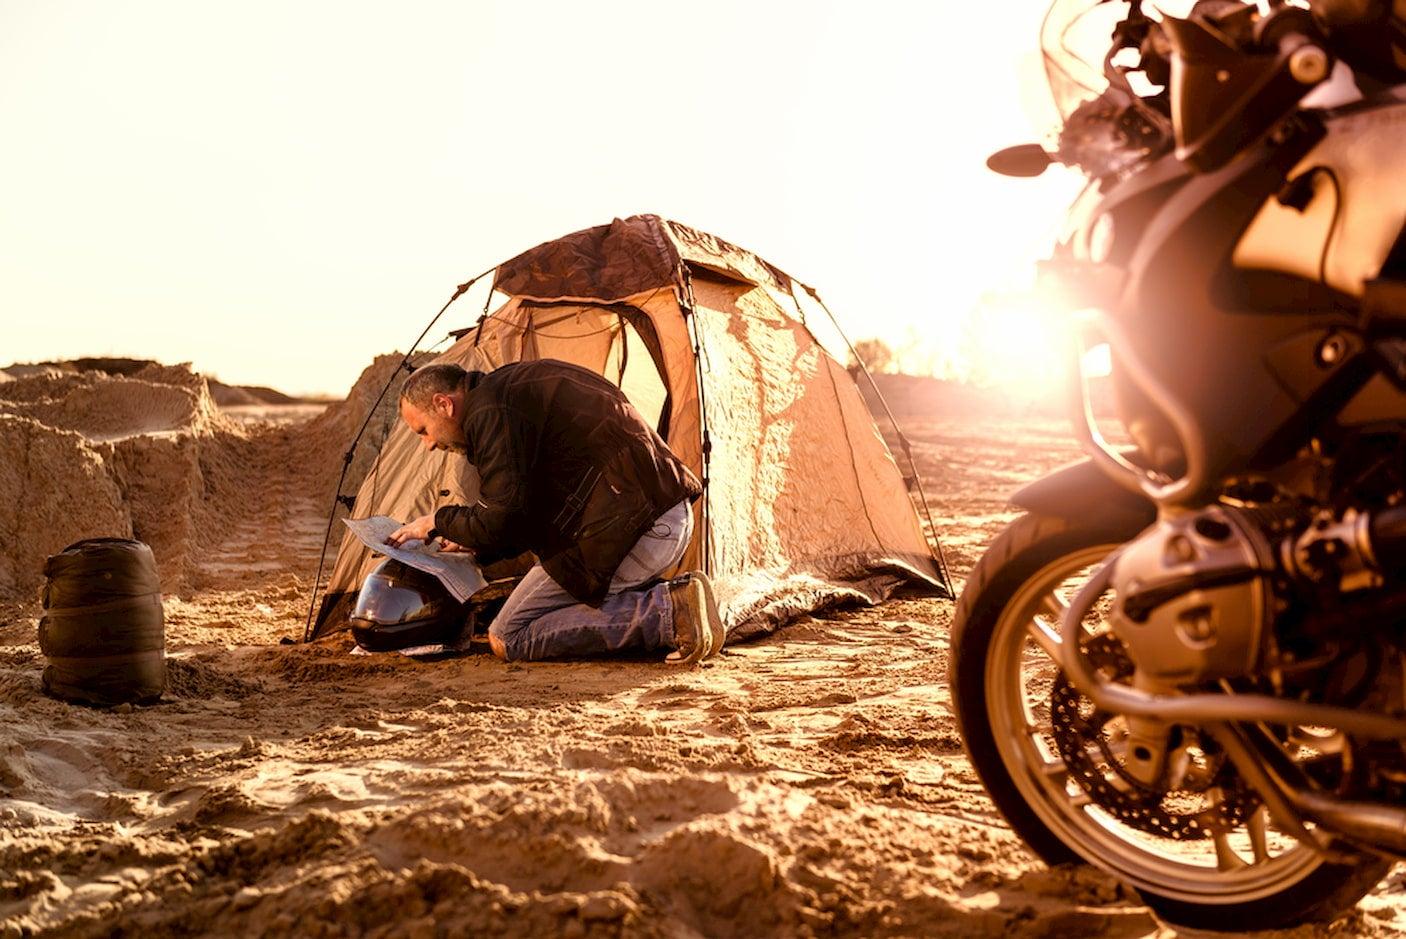 Motorcycle camper packing up tent.